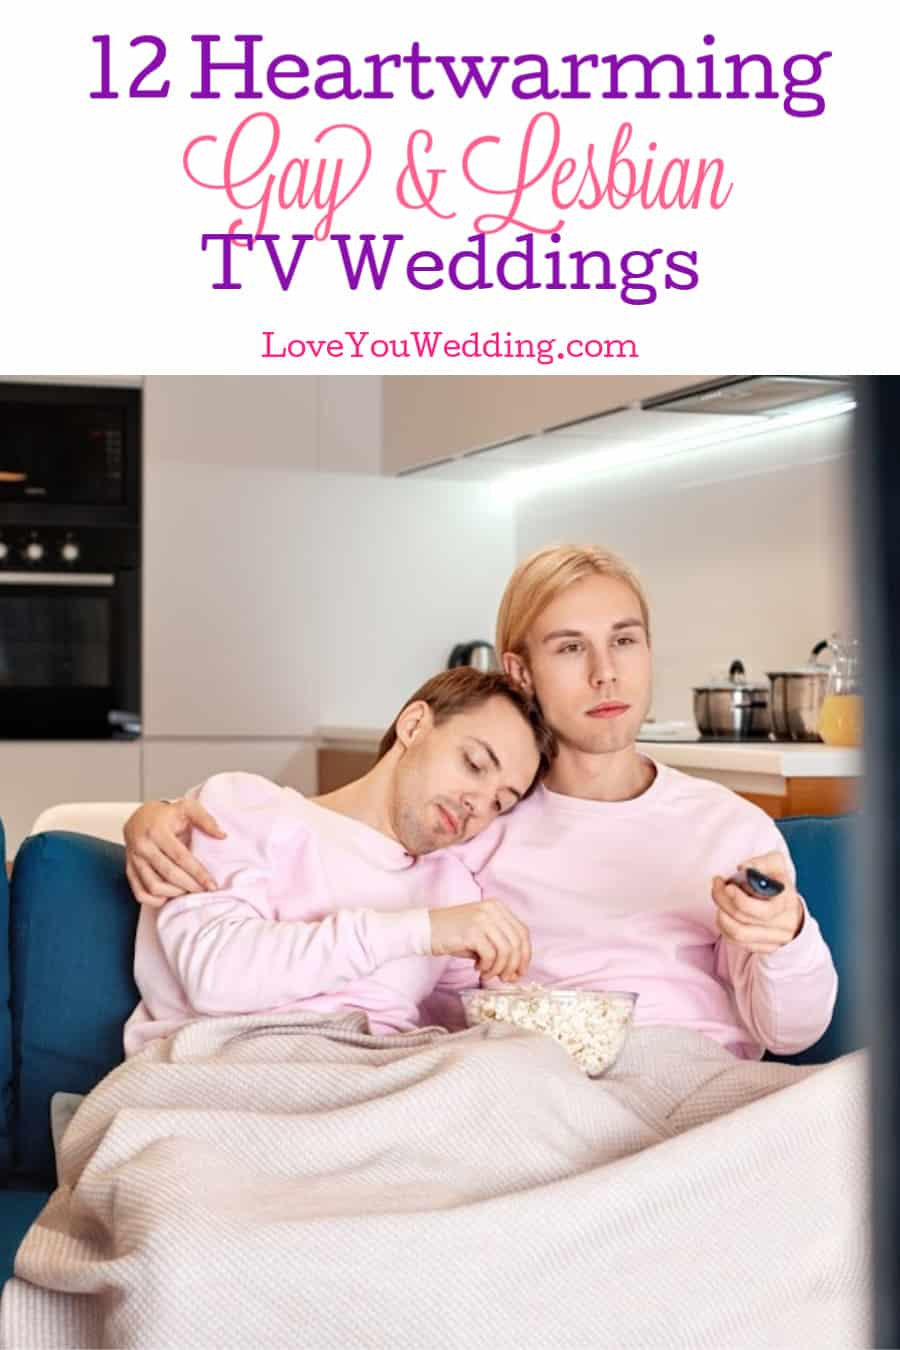 If these touching gay and lesbian TV weddings don't melt your heart, then I don't know what will! Take a look!